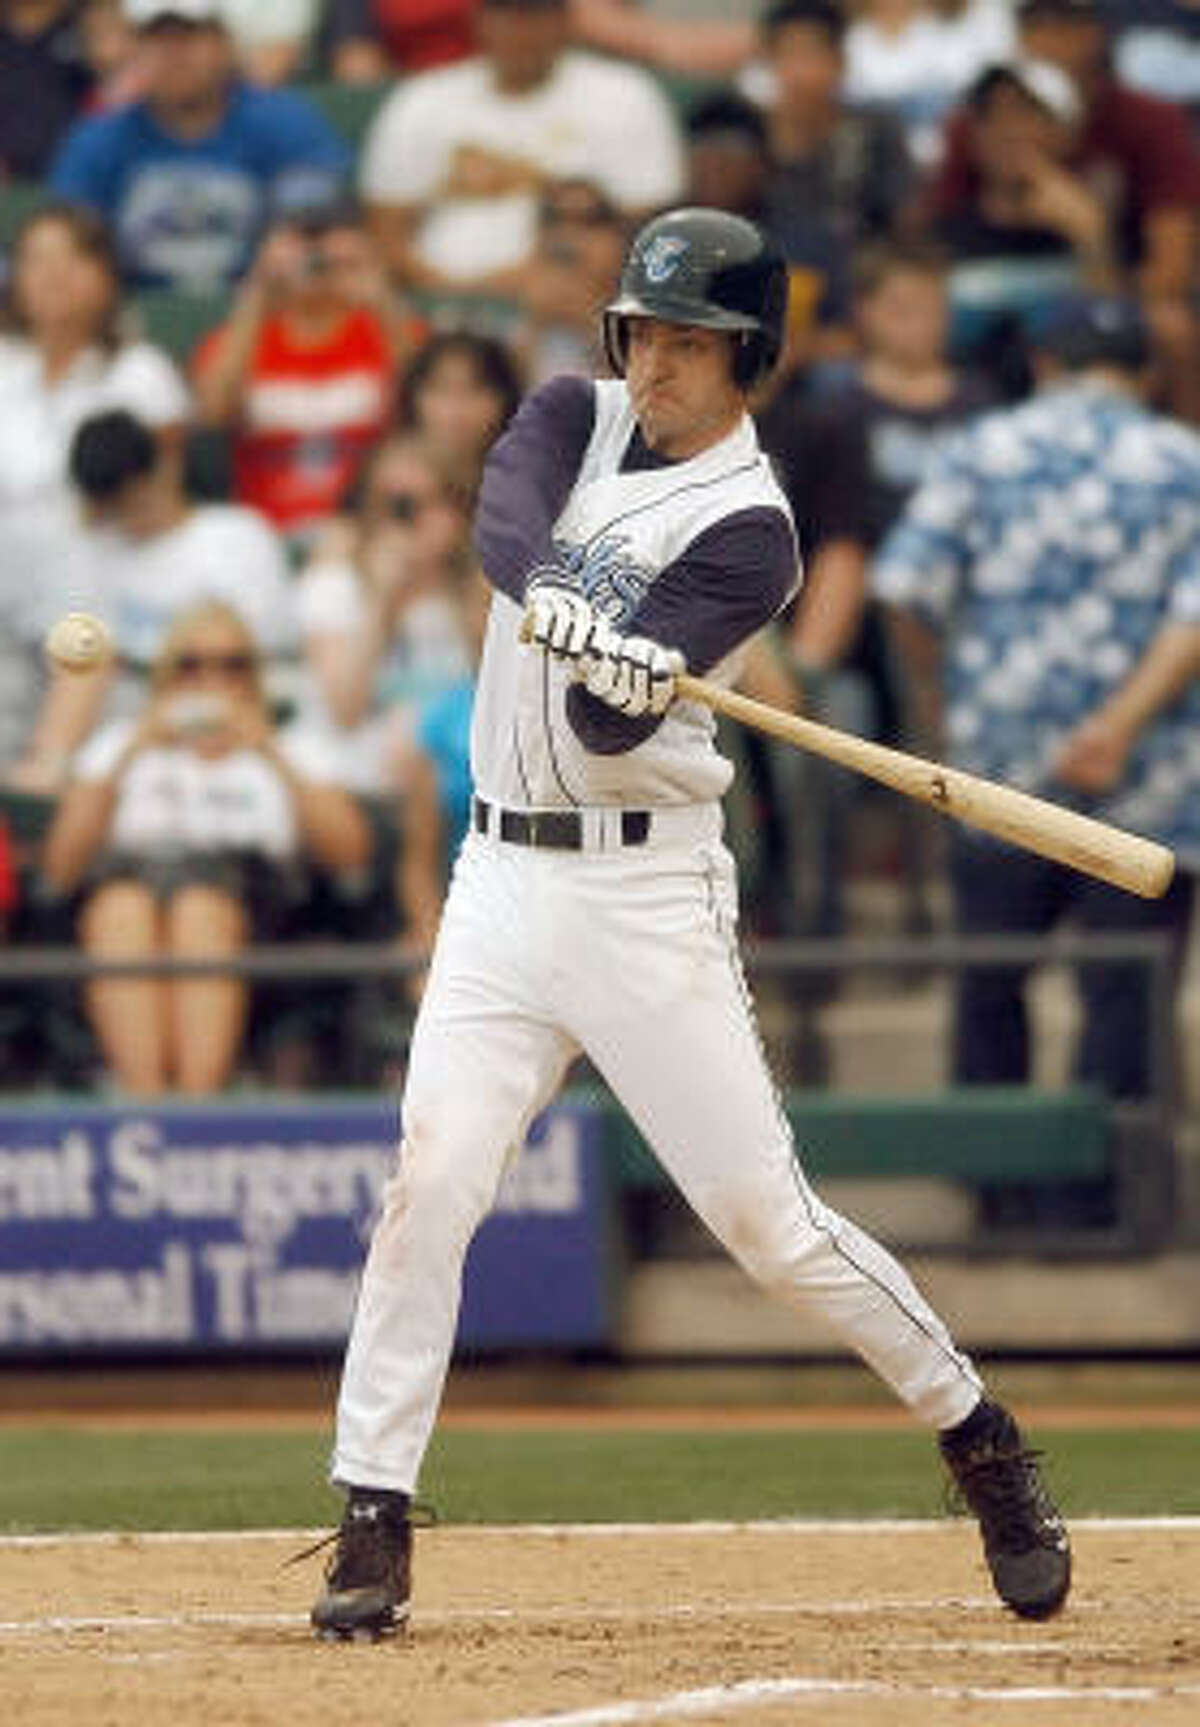 Justin Timberlake, dressed in a Corpus Christi Hooks uniform, takes a swing at a ball during filming of The Open Road, produced by Laurie Foxx.